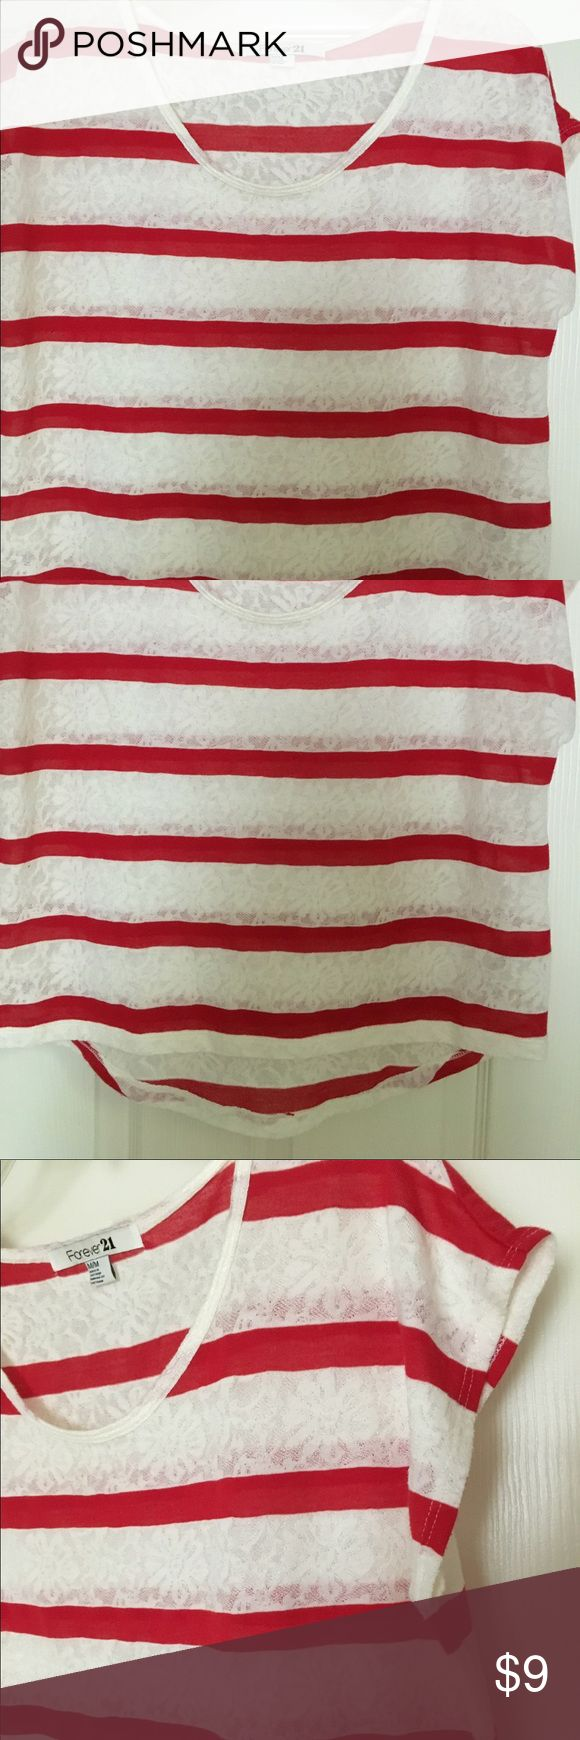 Forever 21 shirt Cute red & white striped shirt, cap sleeves Forever 21 Tops